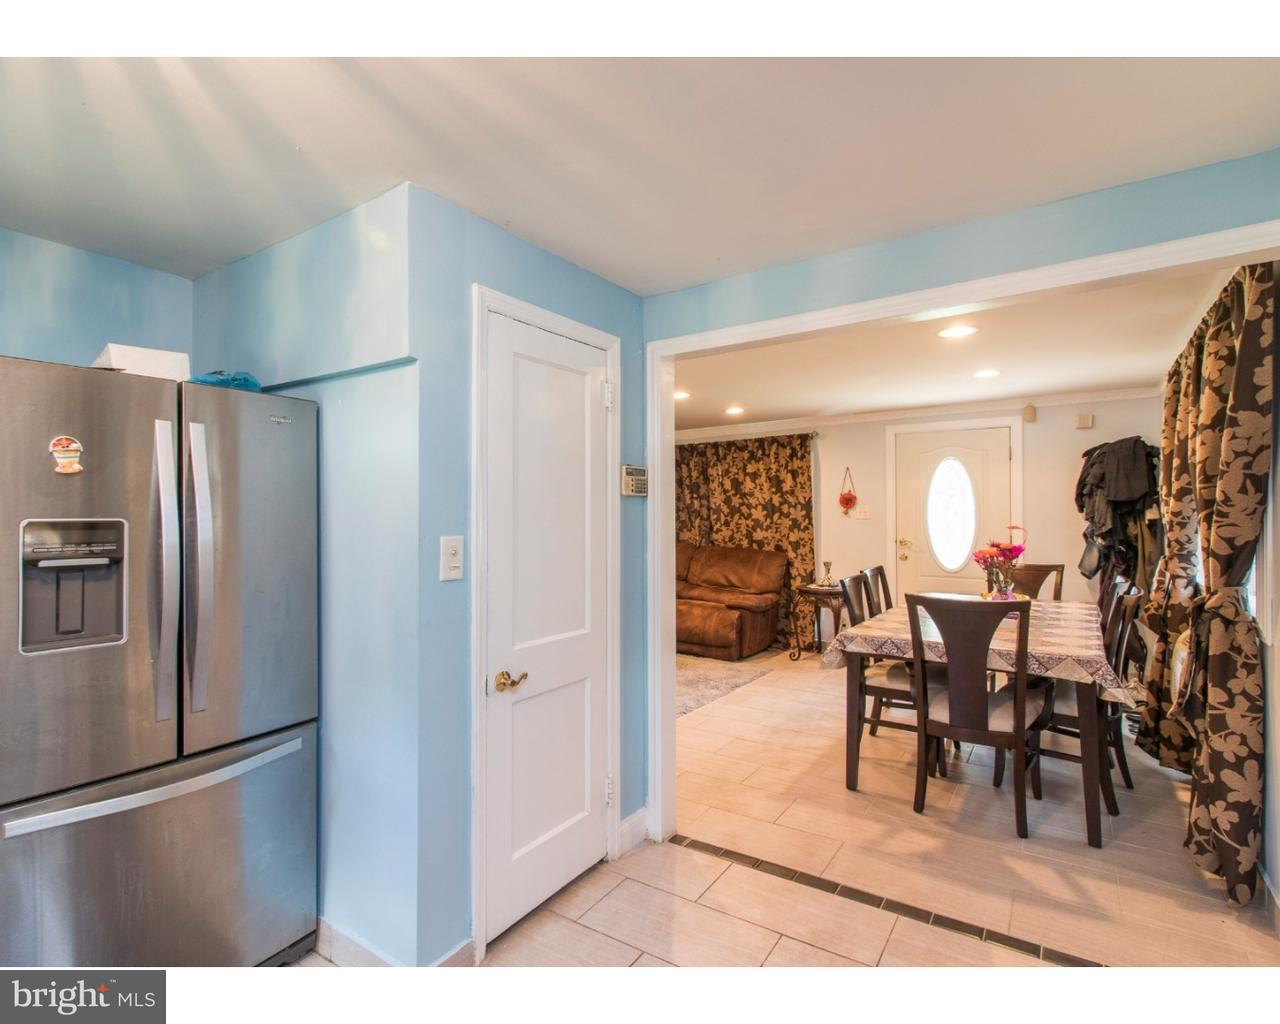 633 ERLEN RD, PLYMOUTH MEETING - Listed at $299,900, PLYMOUTH MEETING